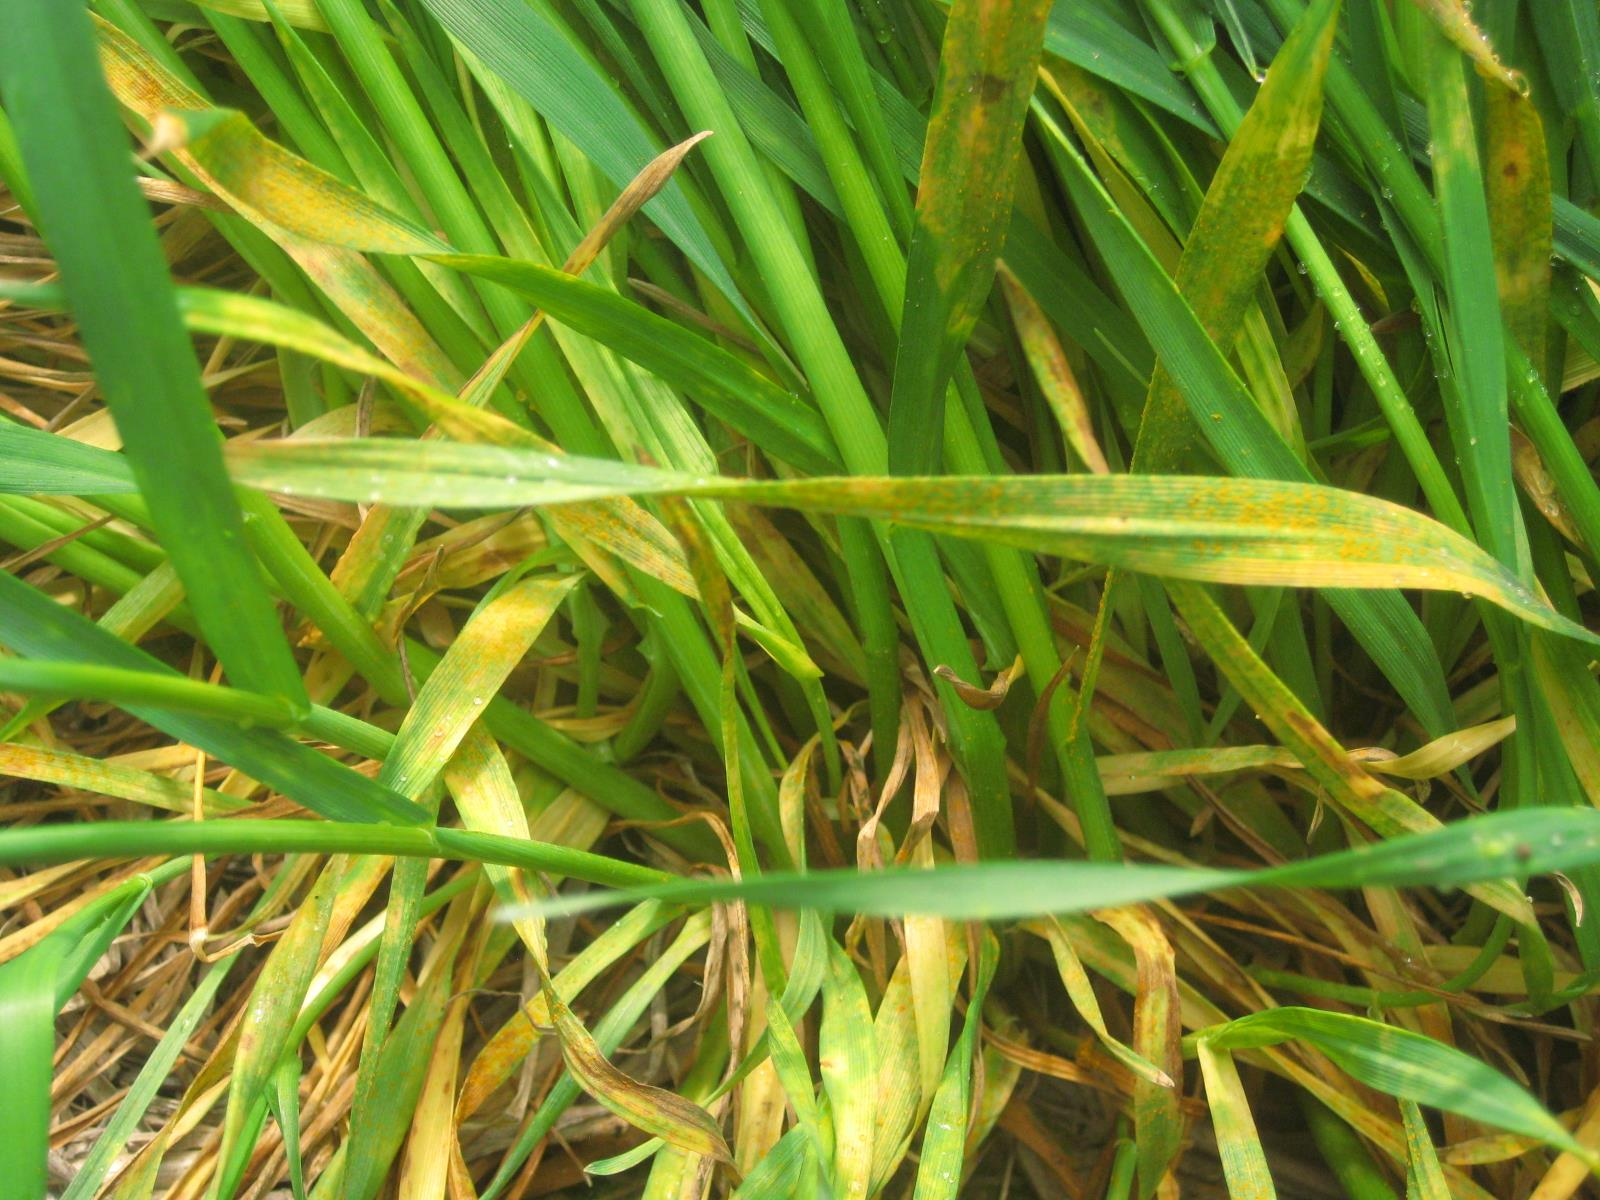 Active stripe rust found in a winter wheat field in Lincoln County, WA on May 7, 2018